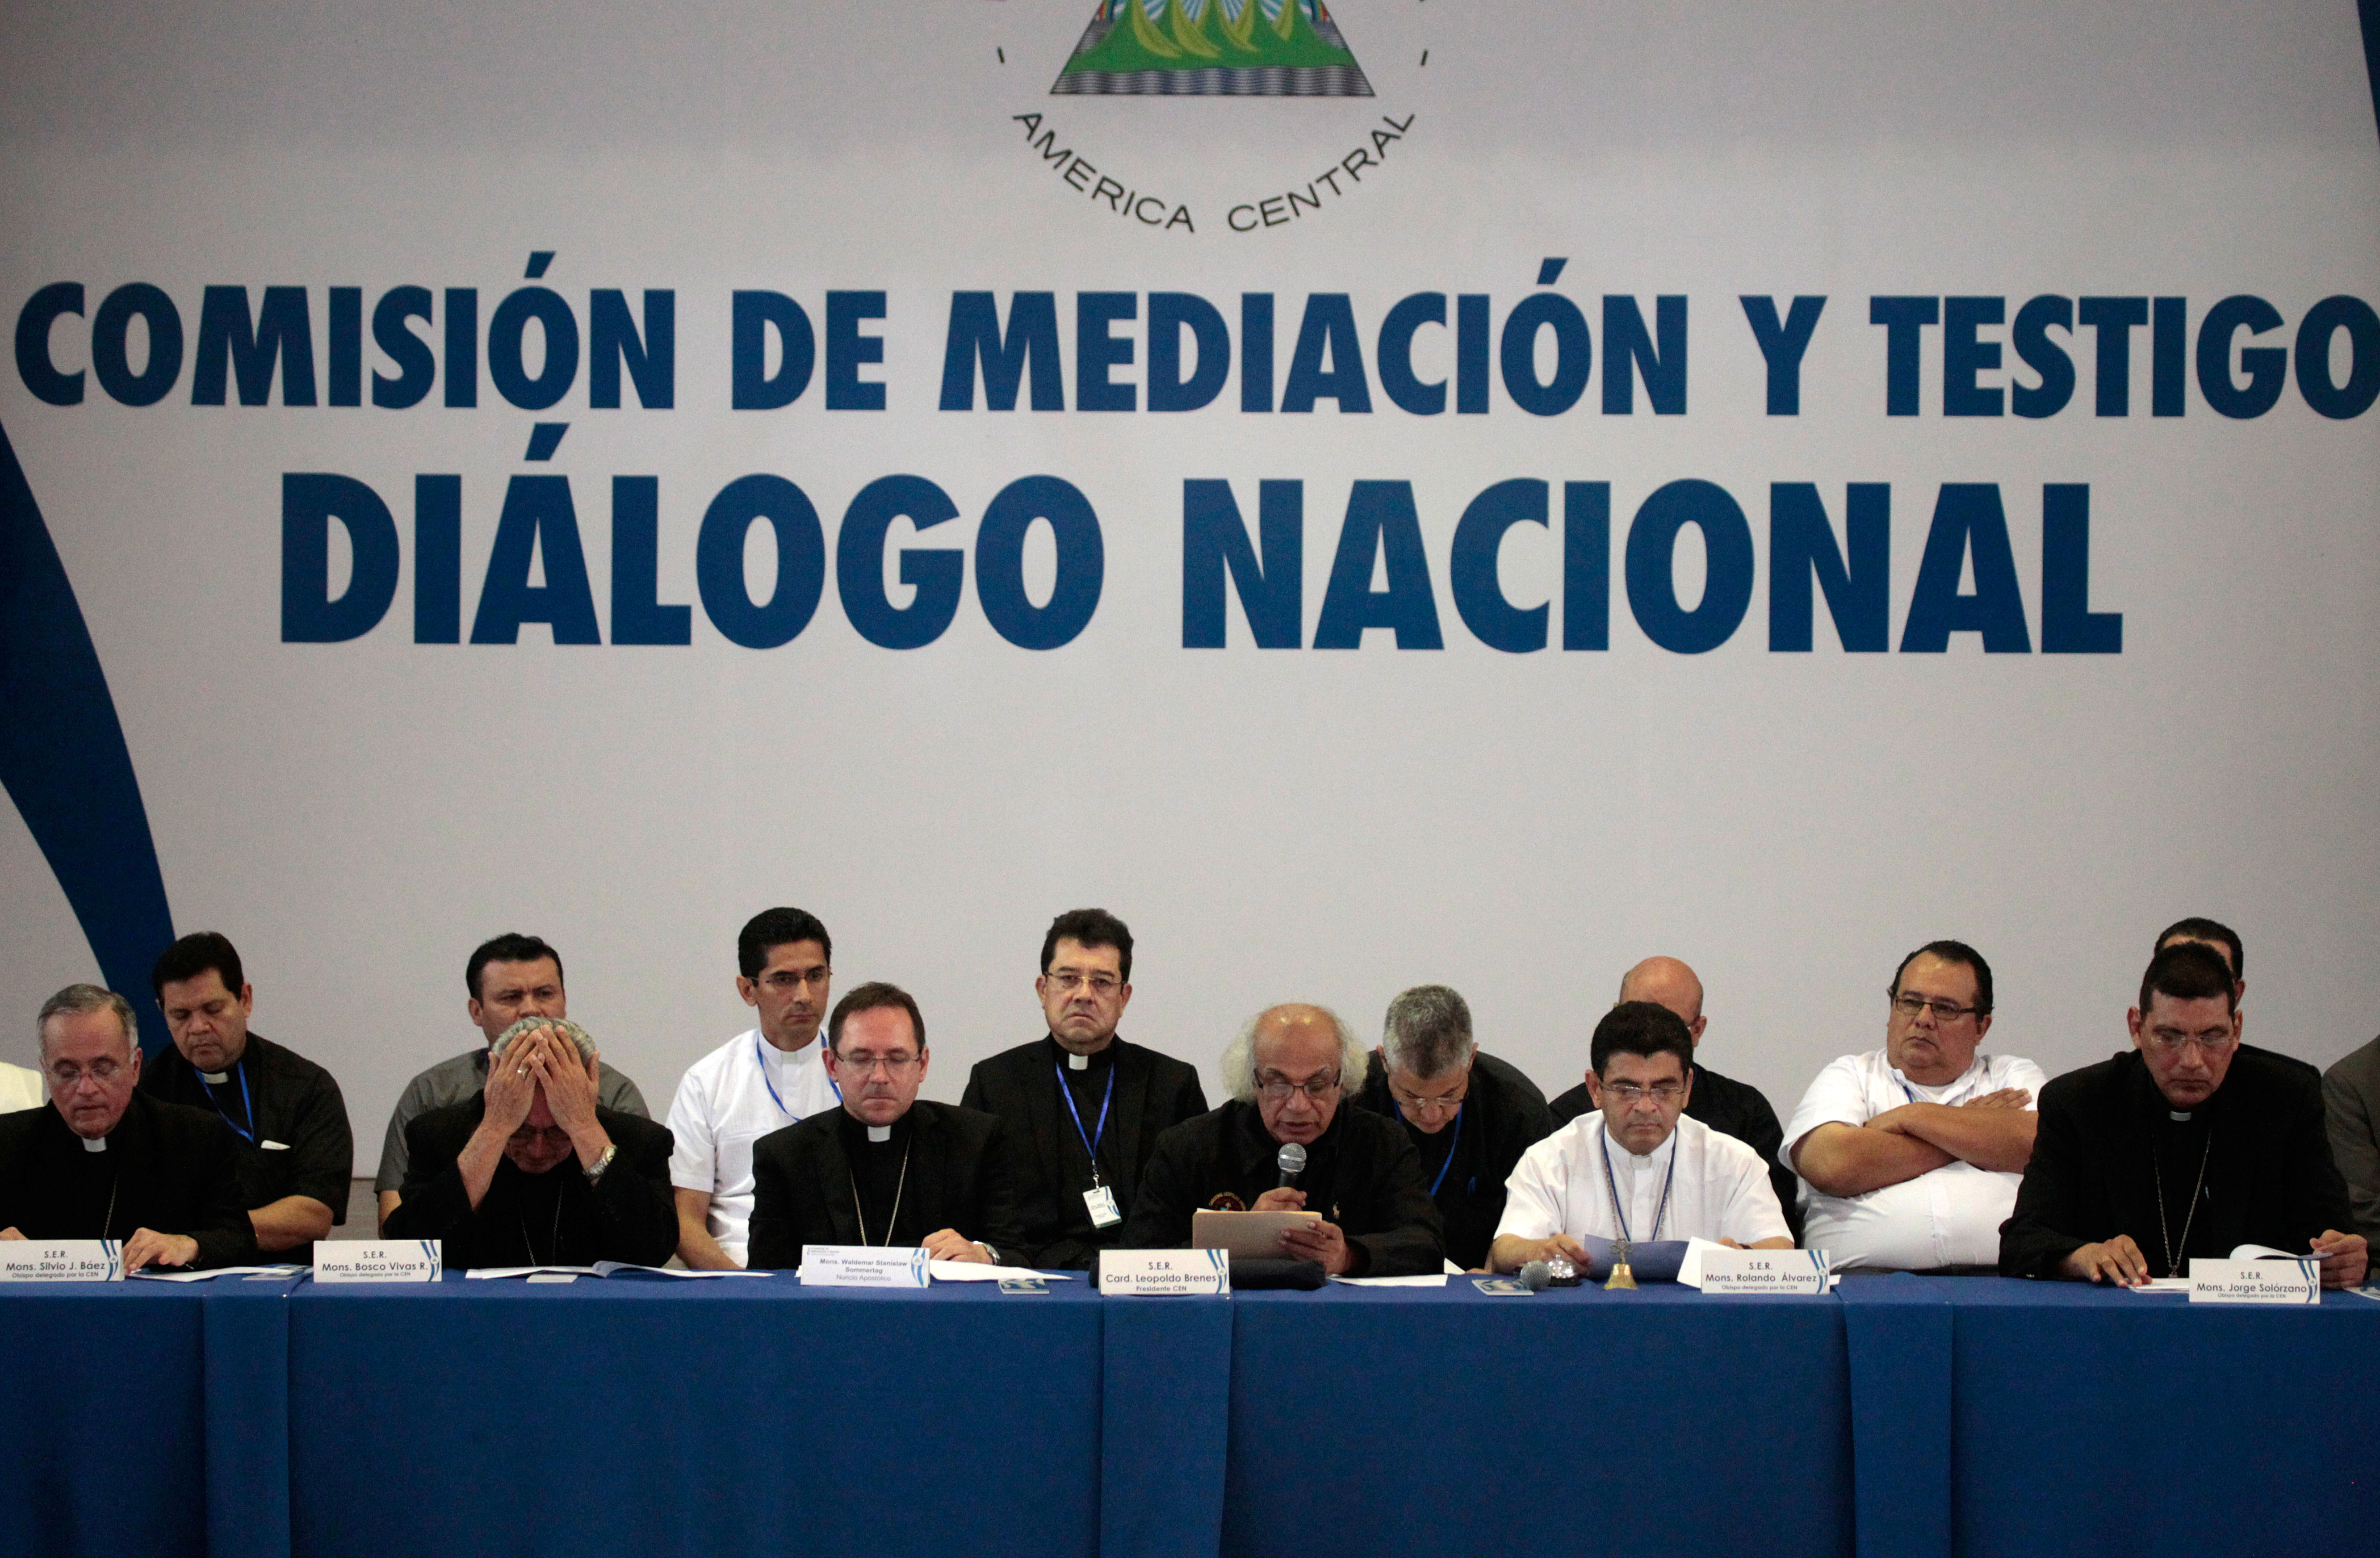 A general view during the national dialogue in Managua, Nicaragua, June 16, 2018.